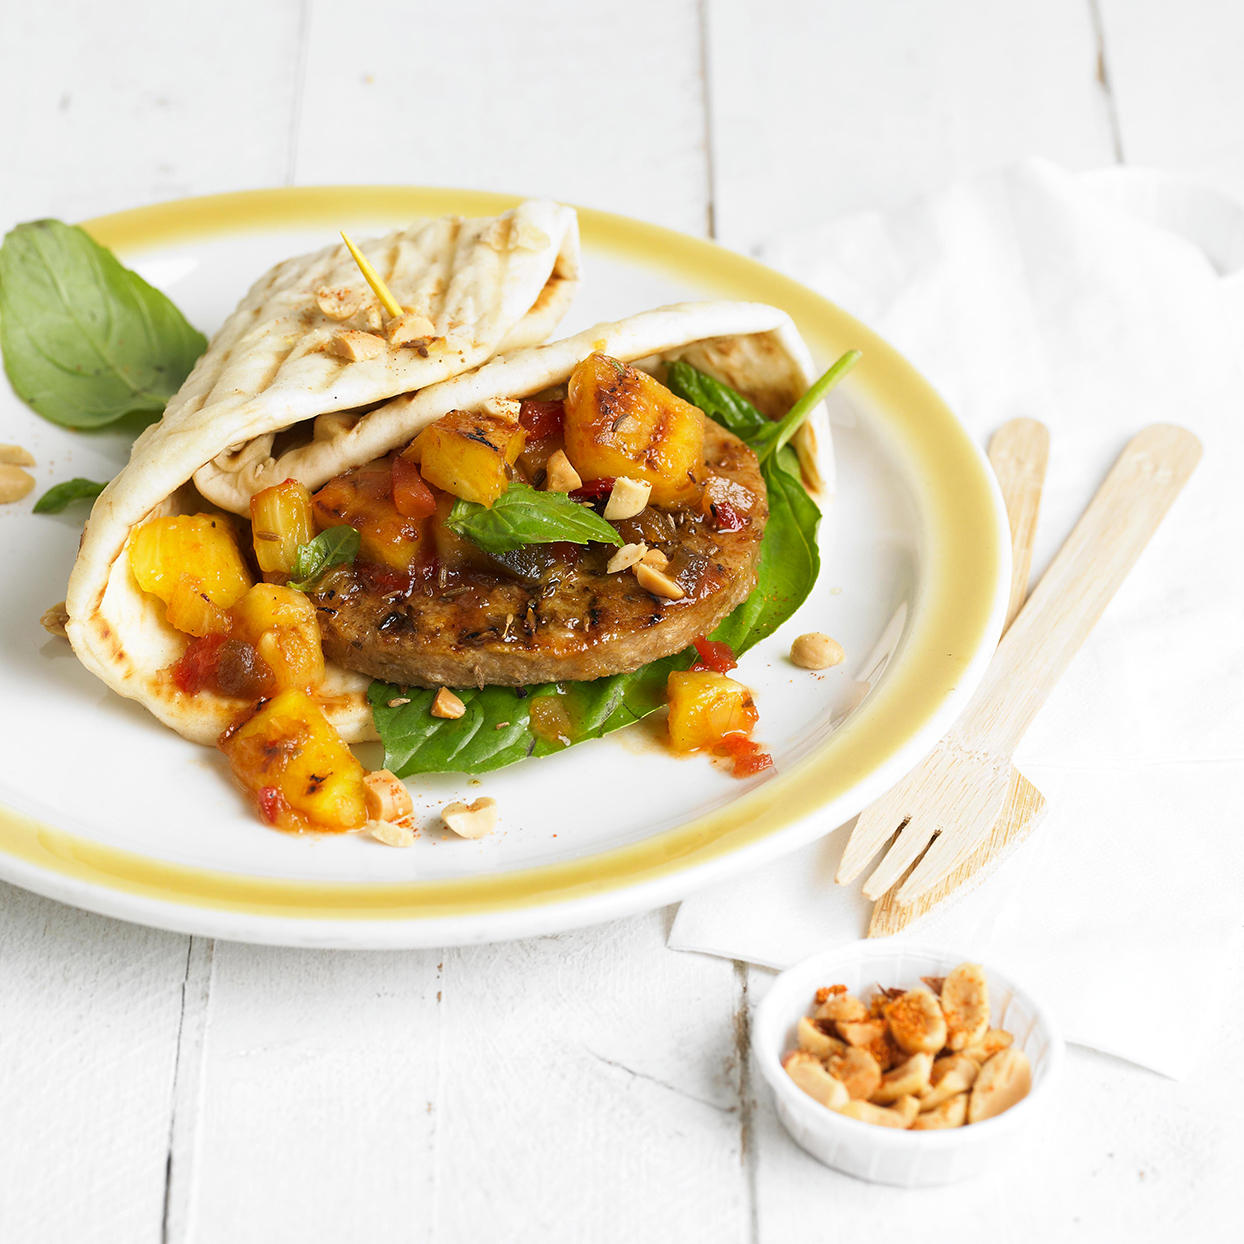 Cumin-Crusted Veggie Burgers with Pineapple Salsa